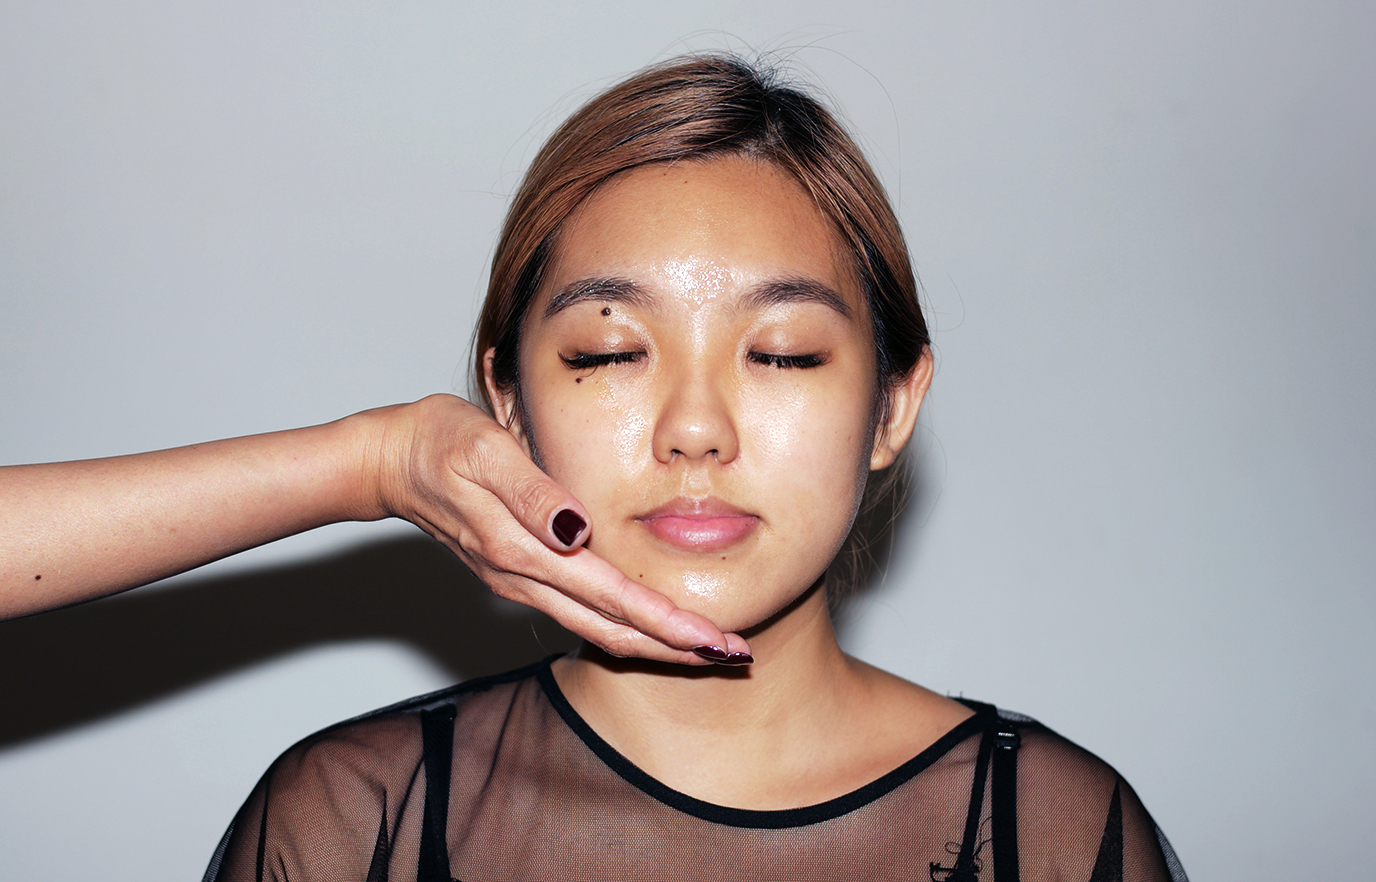 5. It ends with a facial massage to reveal that youthful radiance on the skin